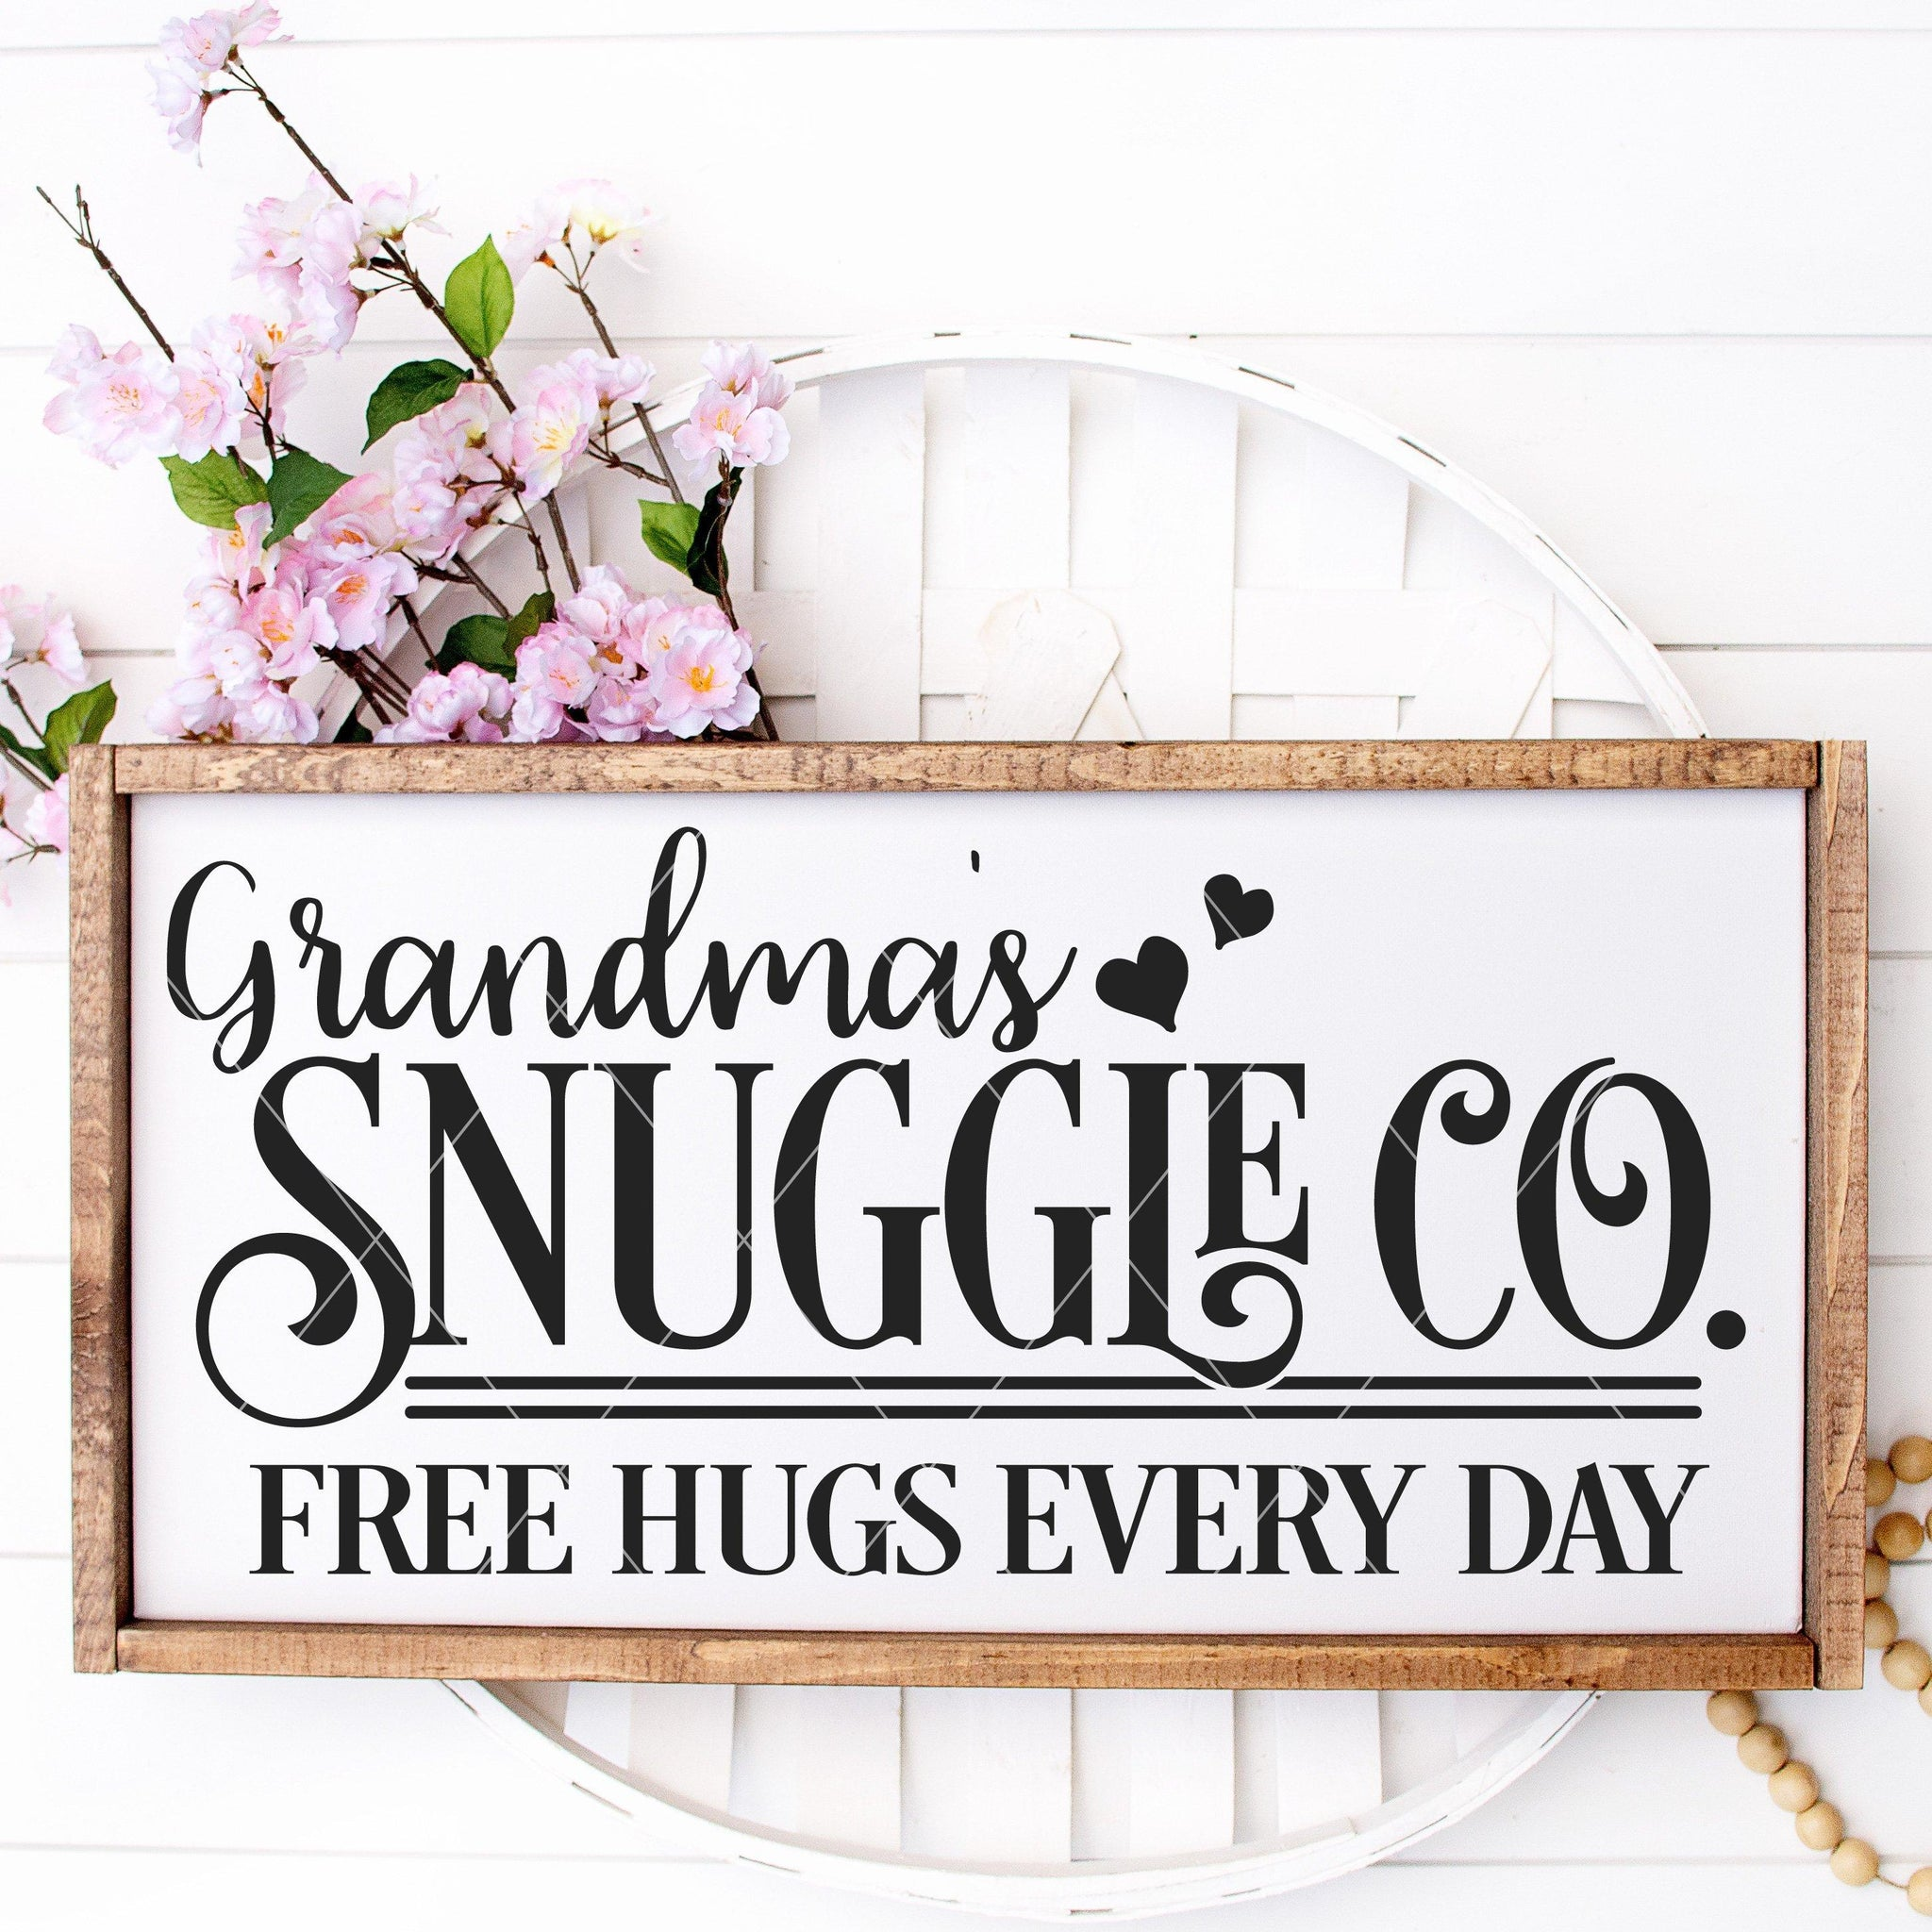 Grandma's Snuggle Co Vintage SVG With Mom & Auntie Variations - Commercial Use SVG Files